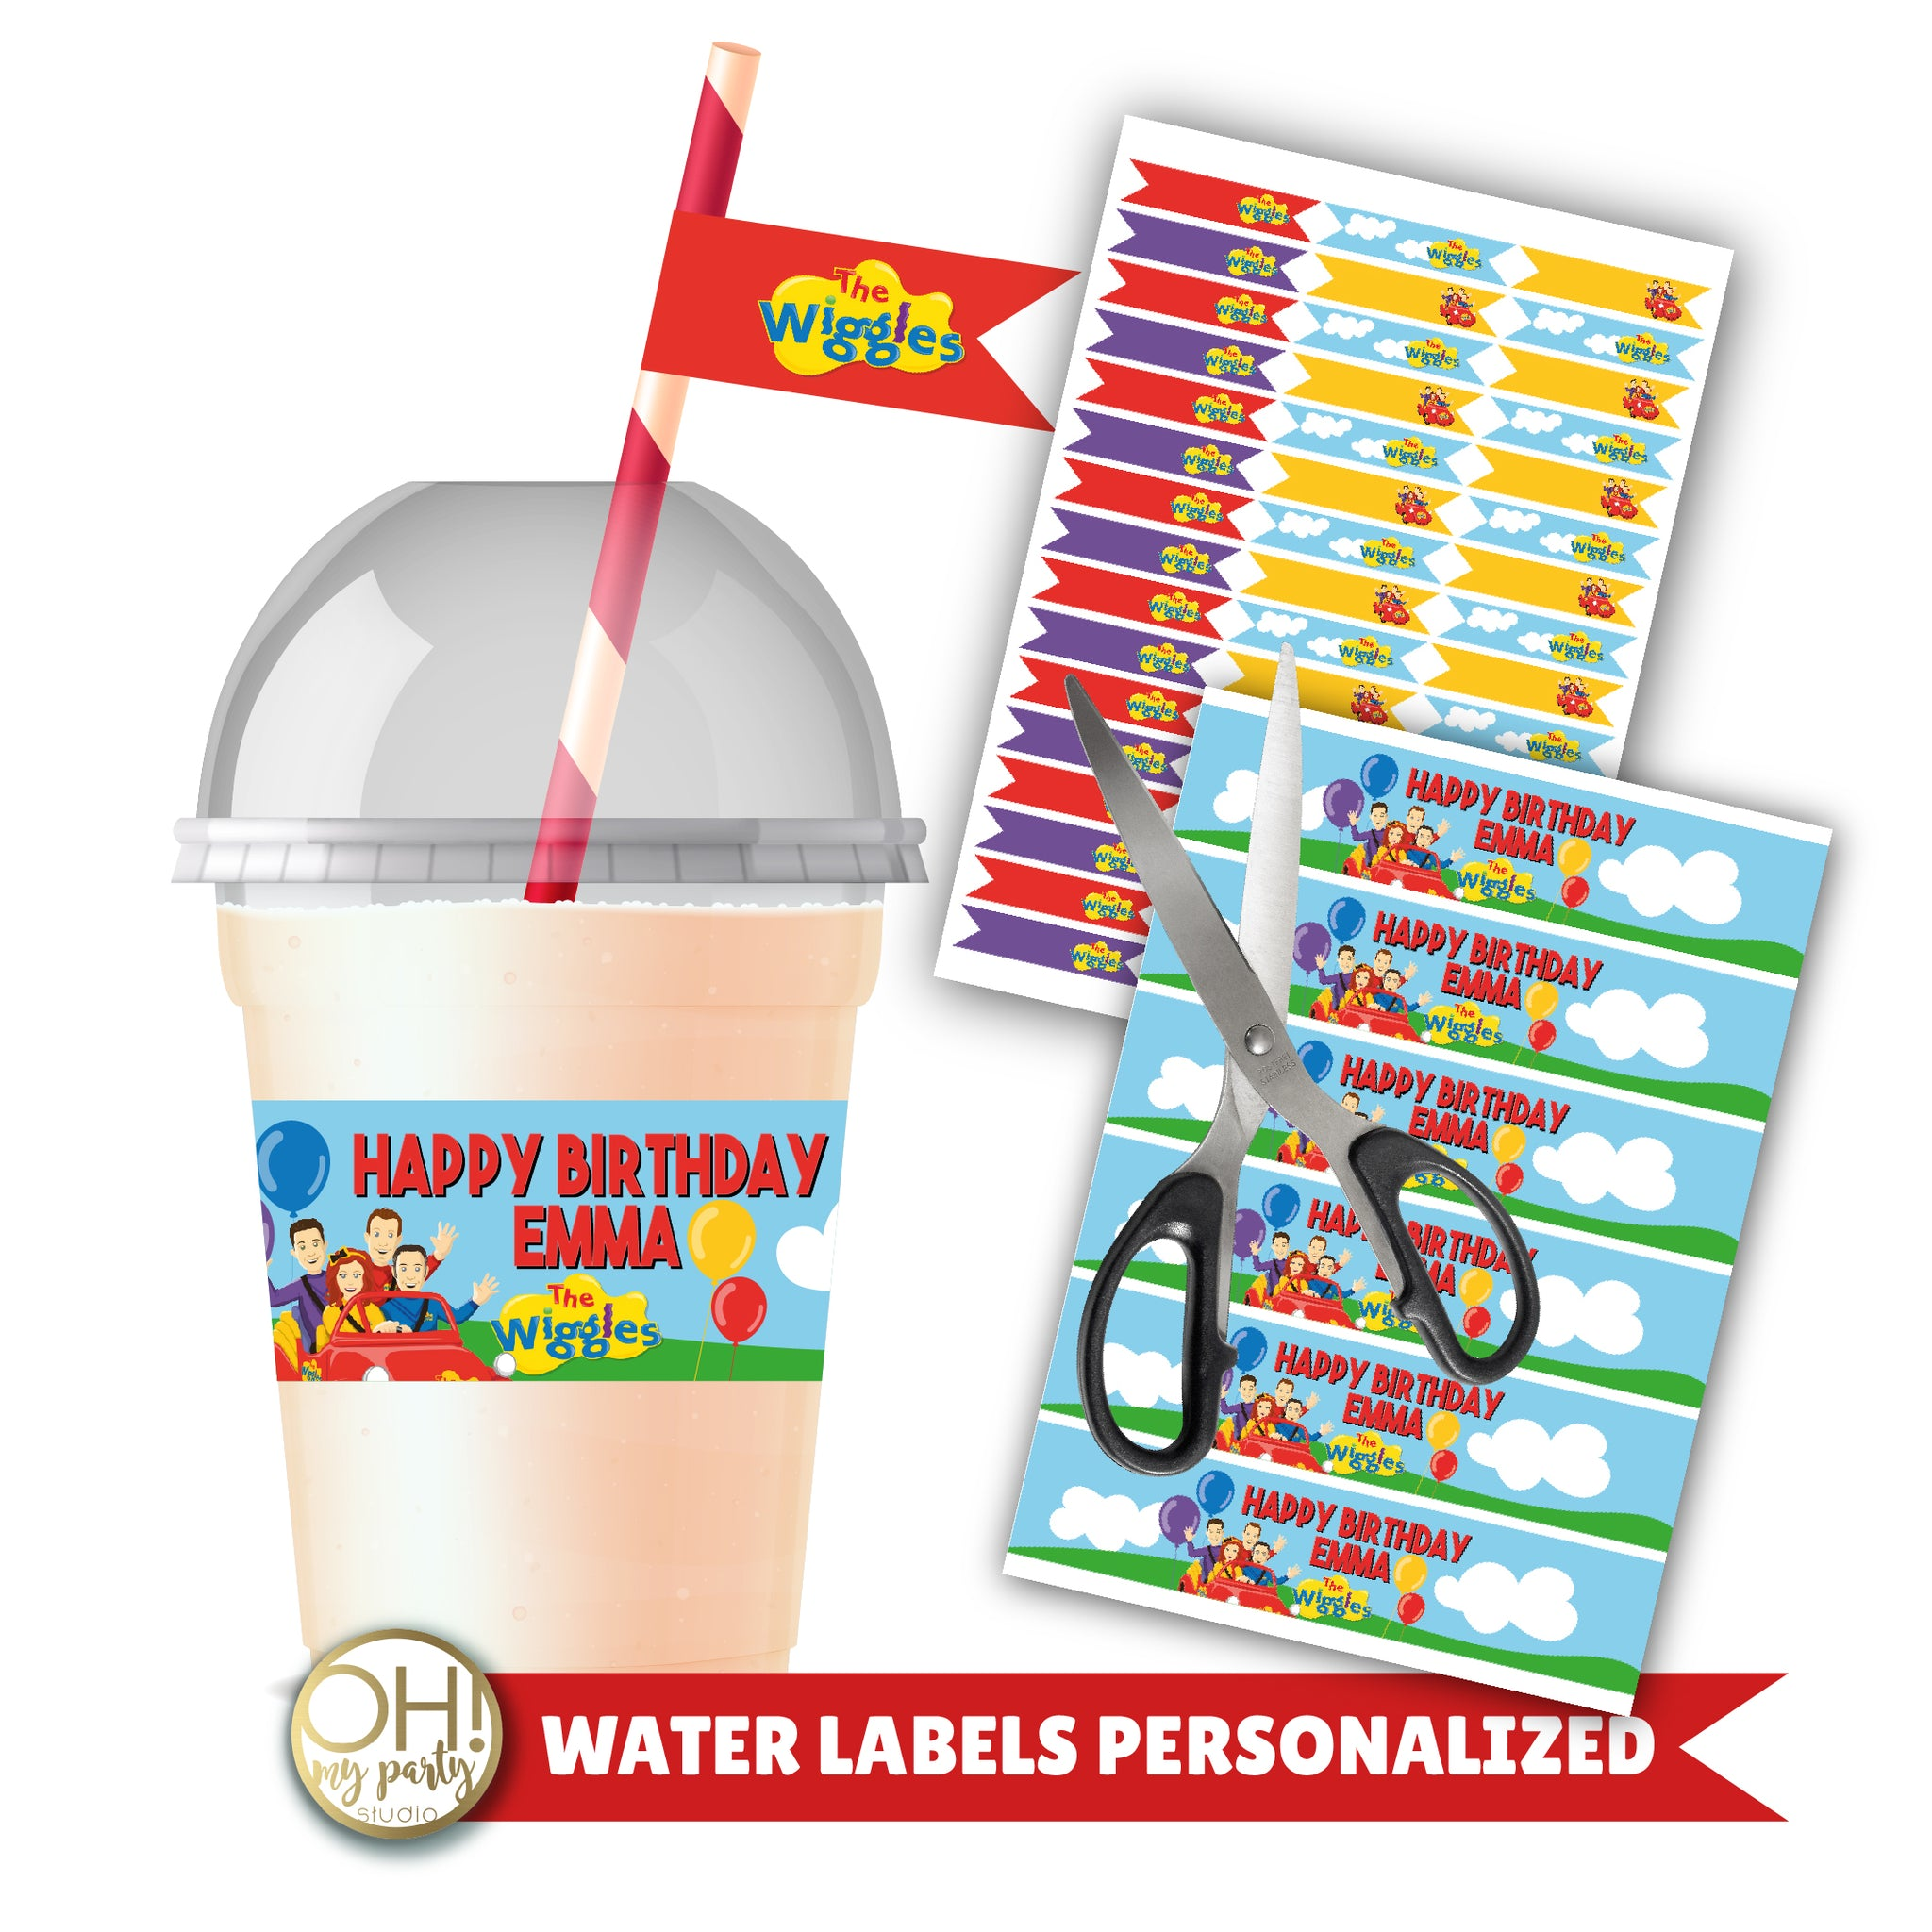 THE WIGGLES WATER LABELS PERSONALIZED, THE WIGGLES WATER